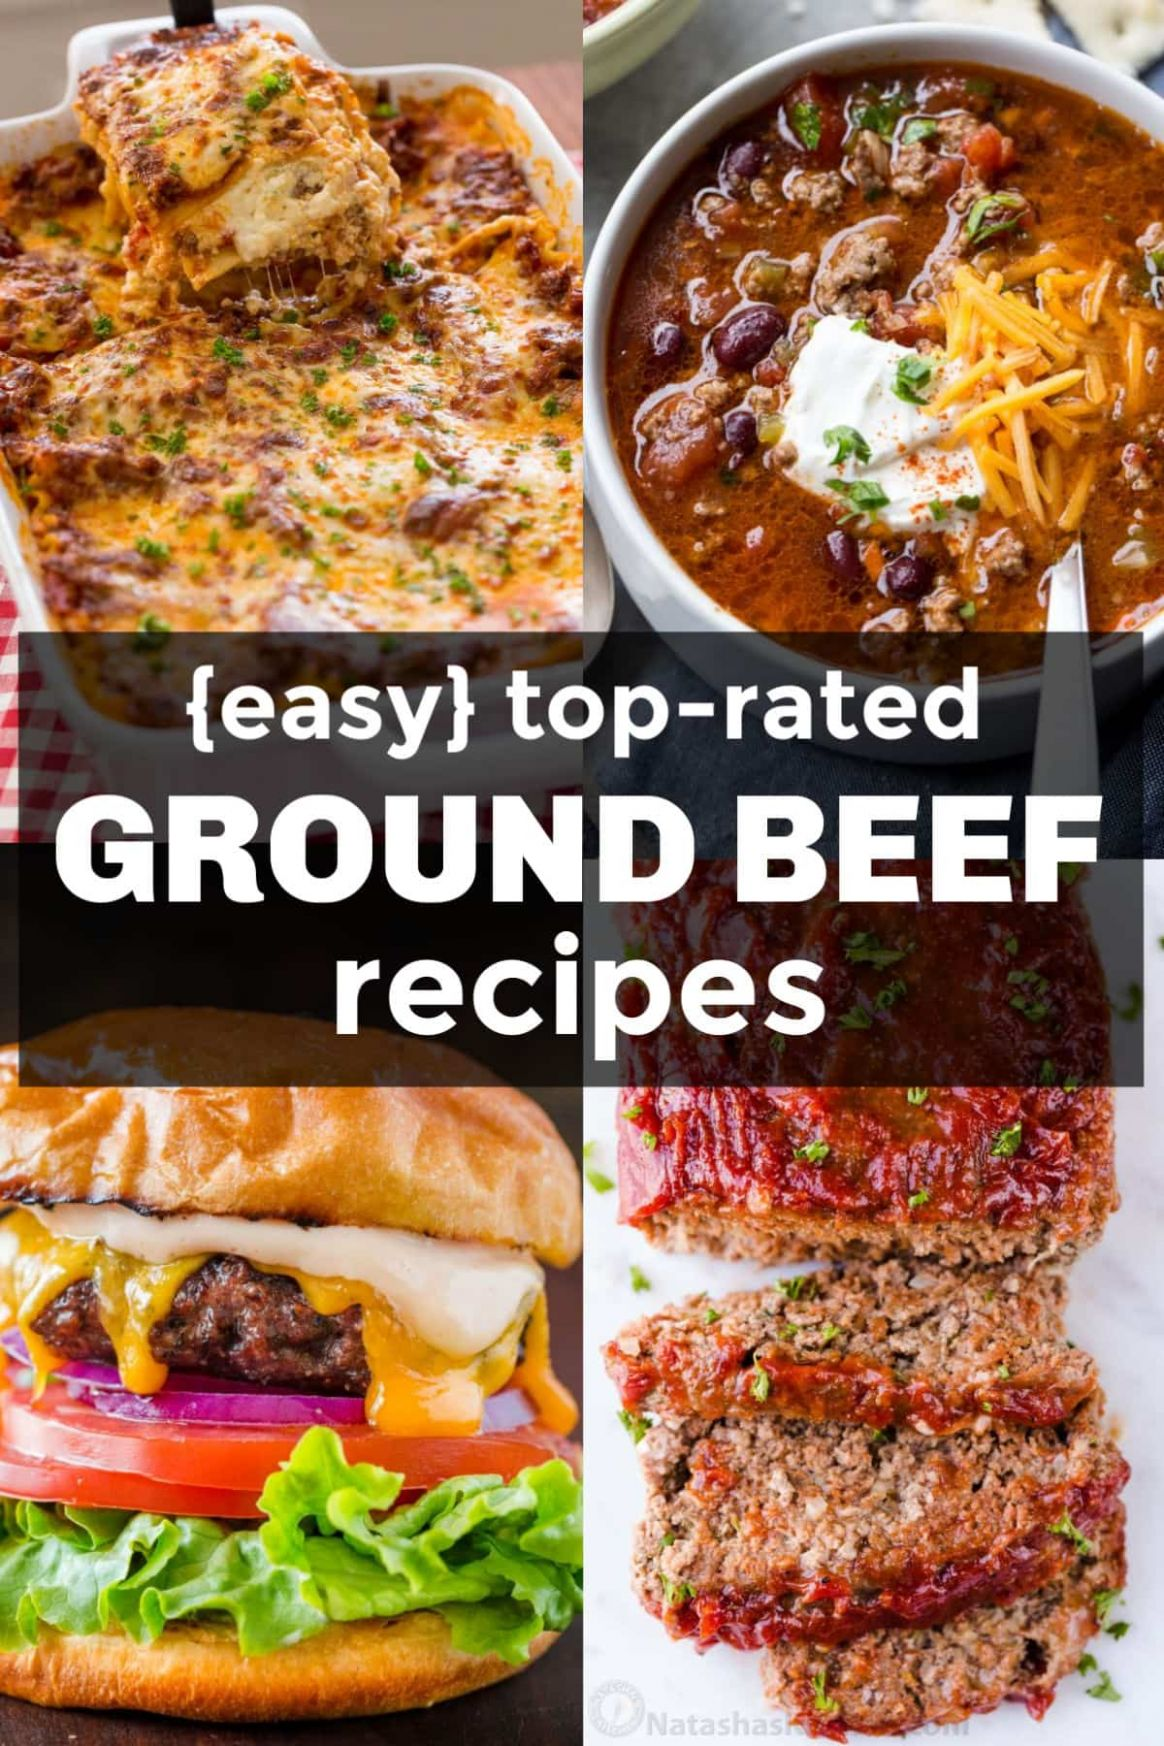 How to Cook Ground Beef for Ground Beef Recipes - Simple Recipes With Ground Beef